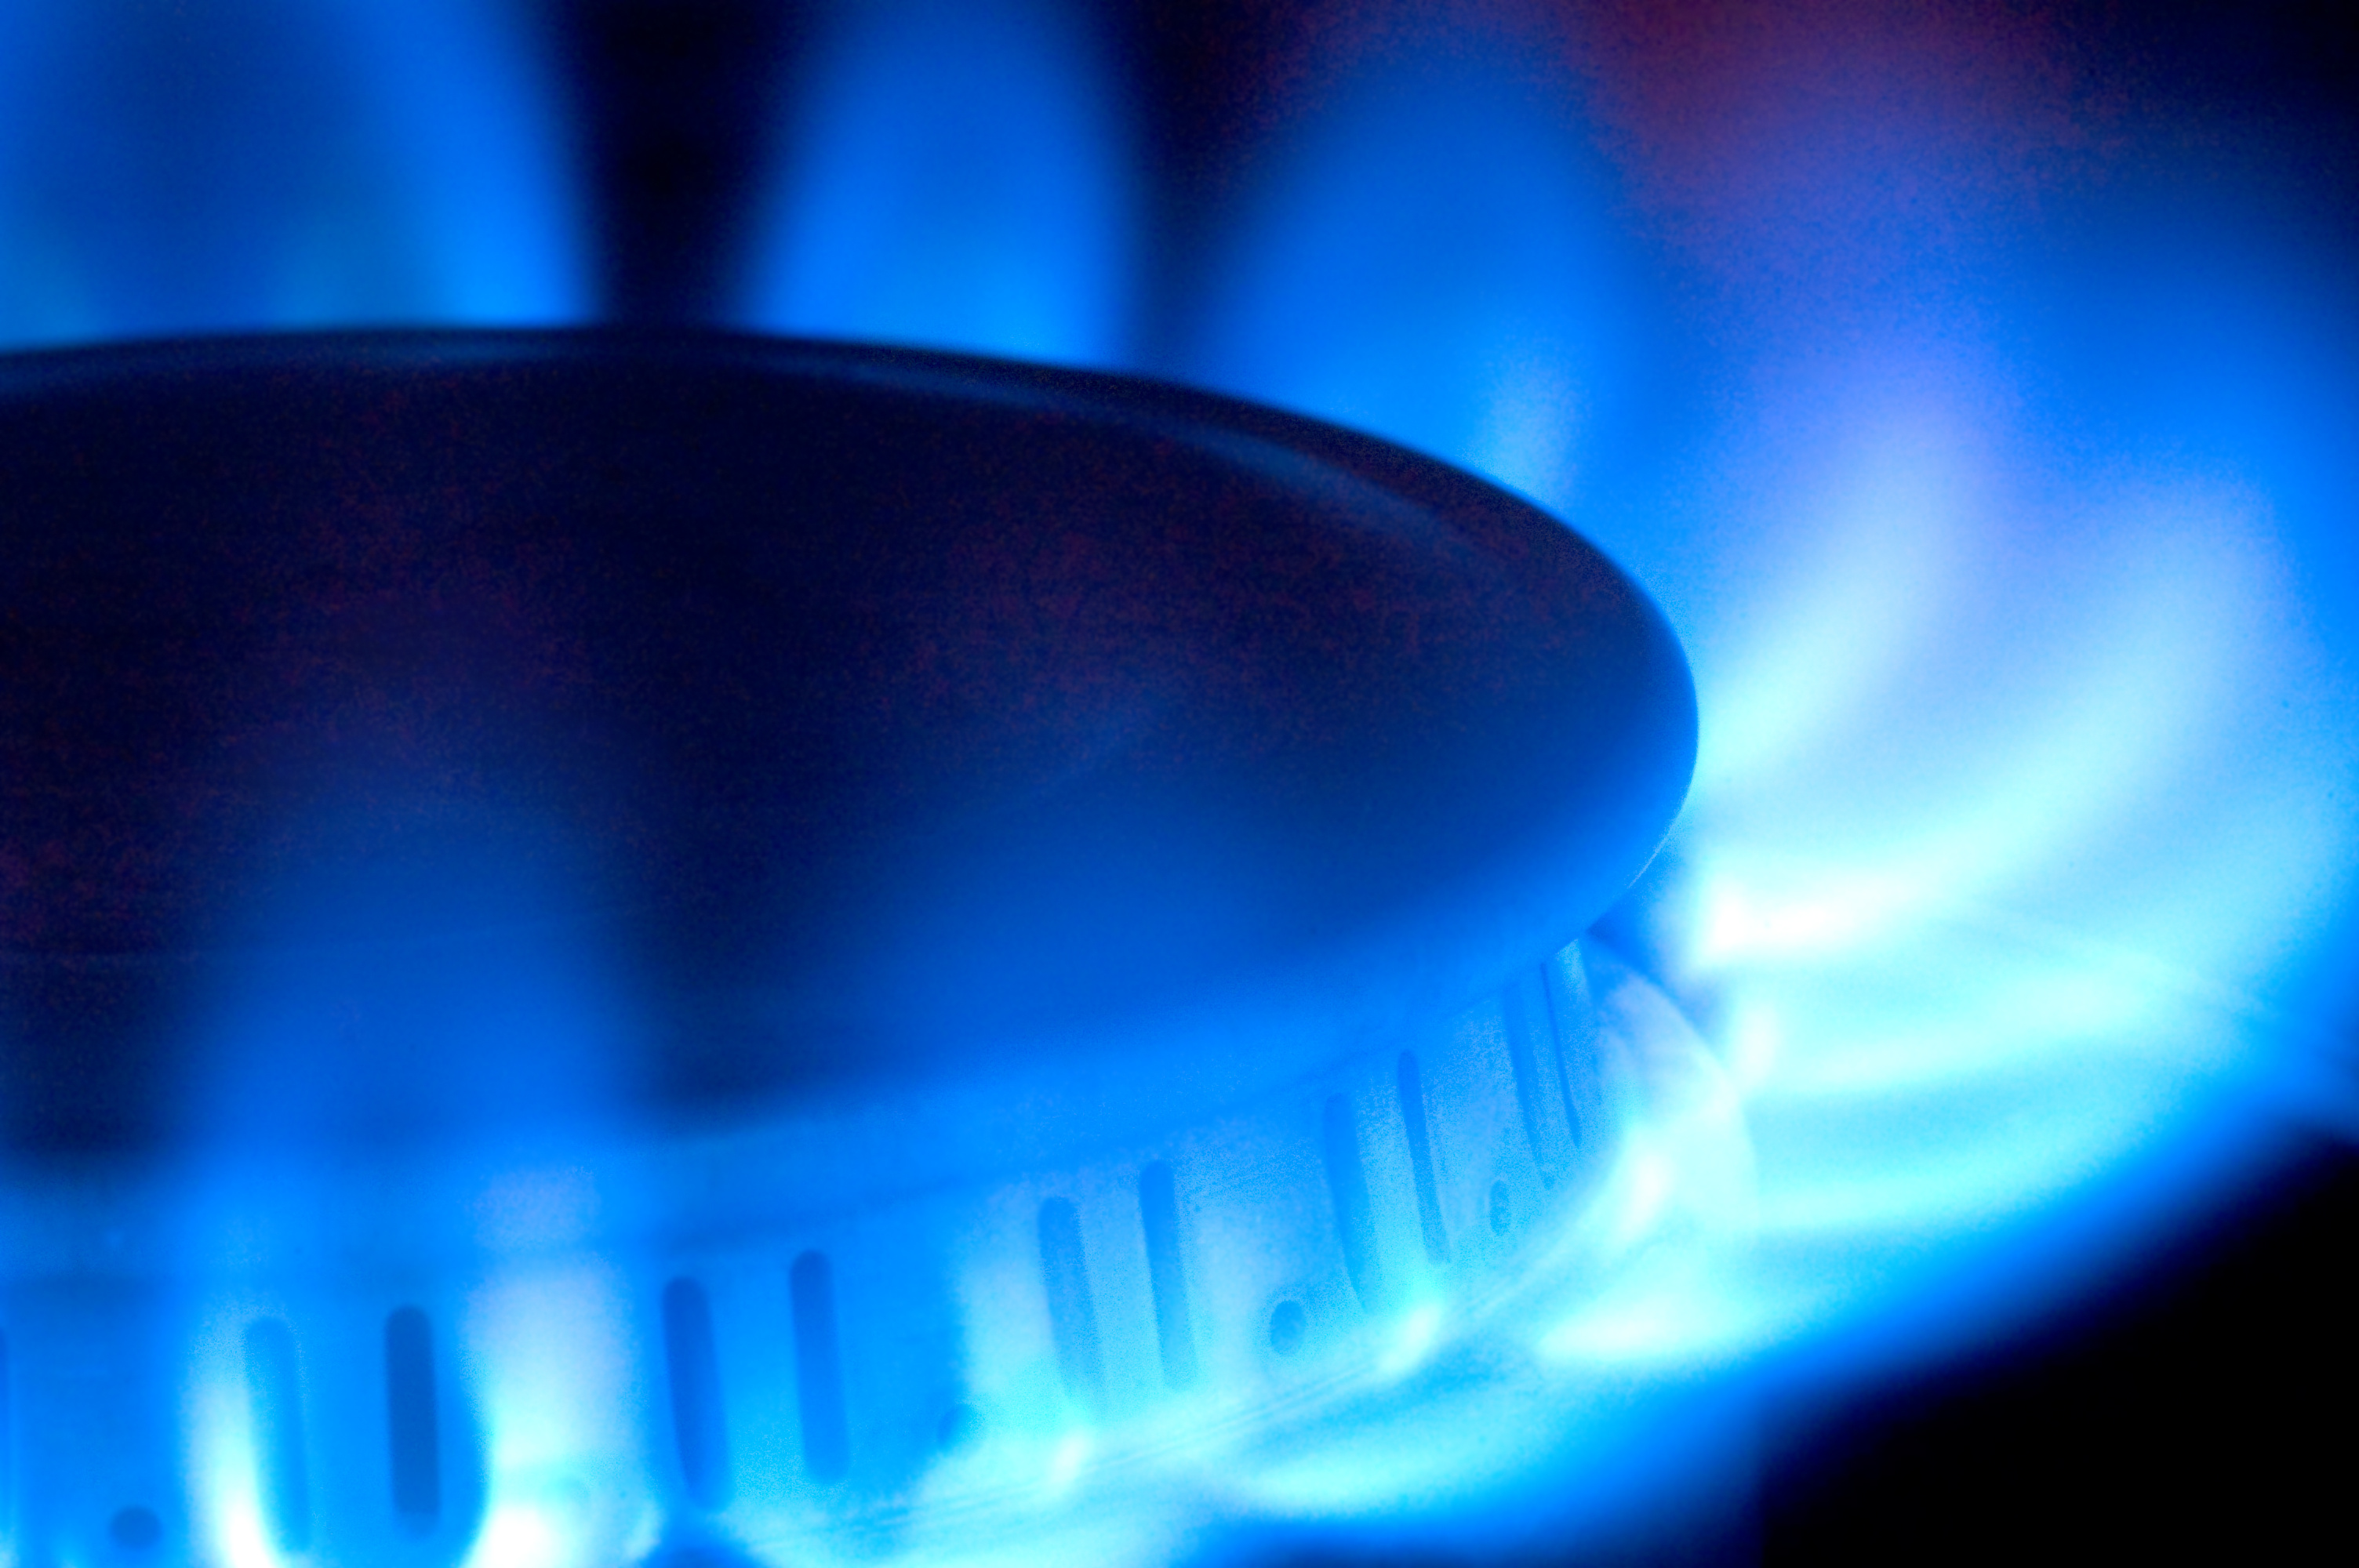 Smaller energy suppliers could thrive as rivals collapse - https://roomslocal.co.uk/blog/smaller-energy-suppliers-could-thrive-as-rivals-collapse #energy #suppliers #could #thrive #rivals